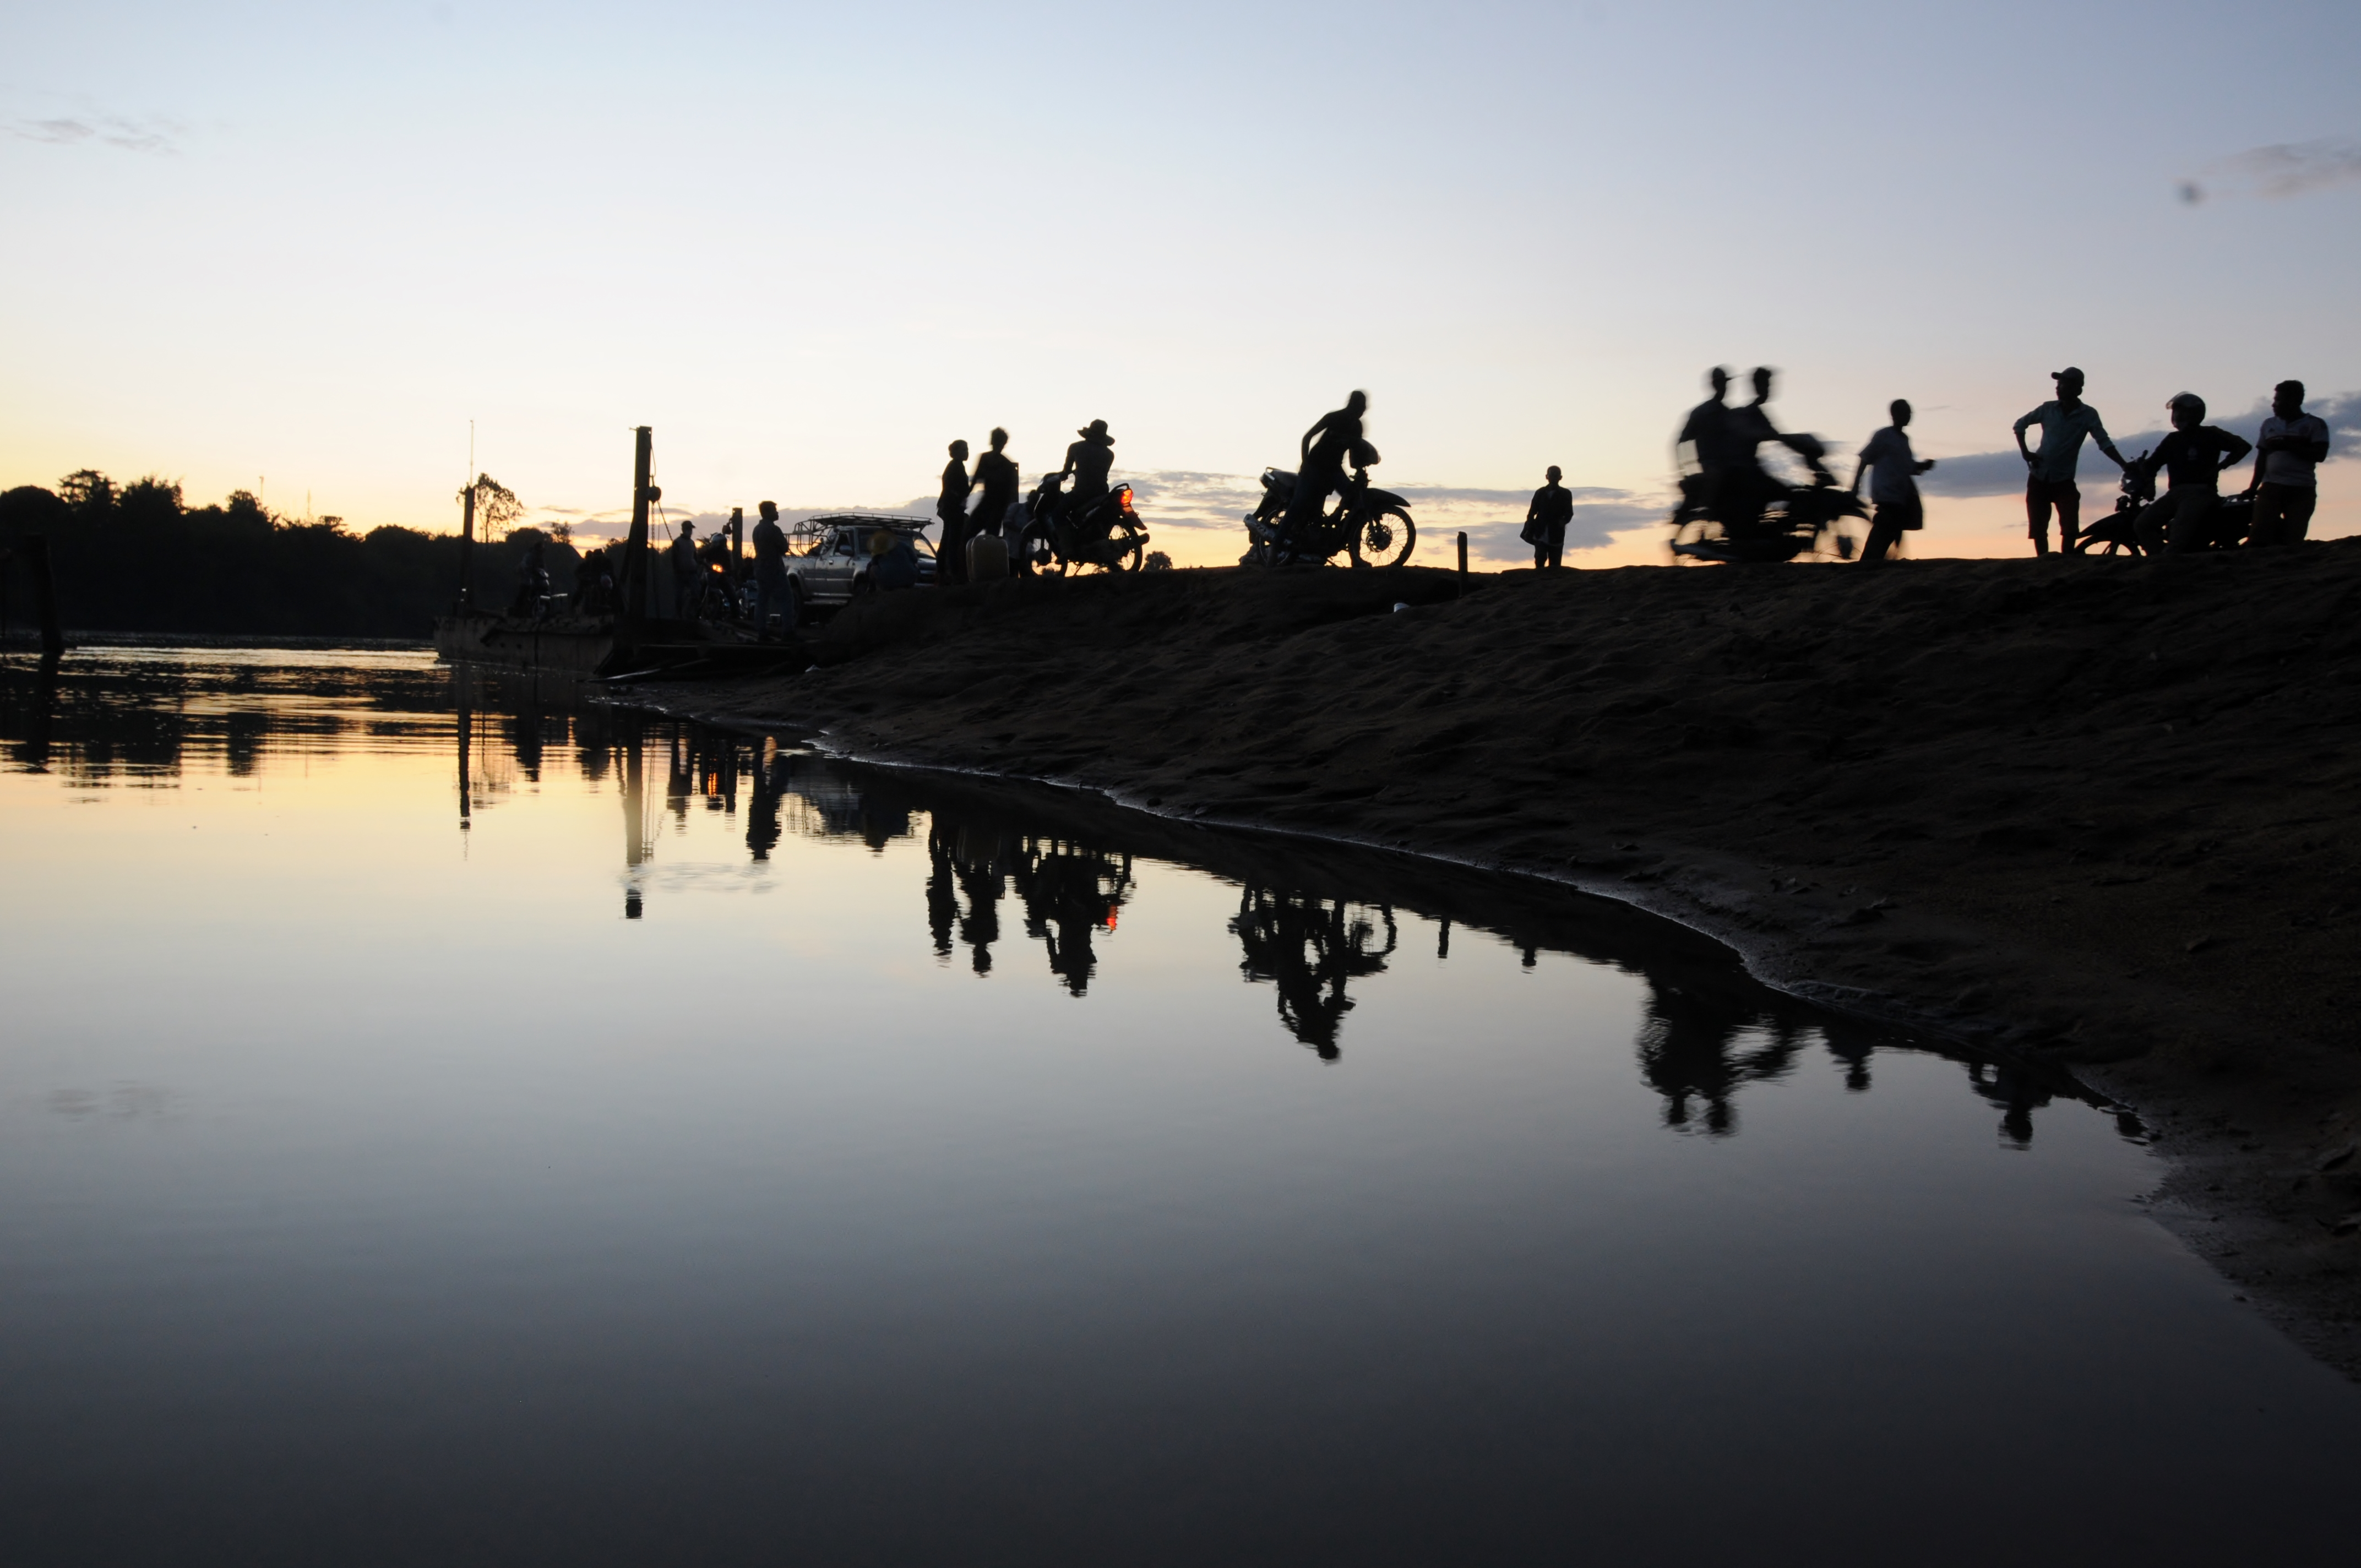 People crossing the river in the evening, Cambodia